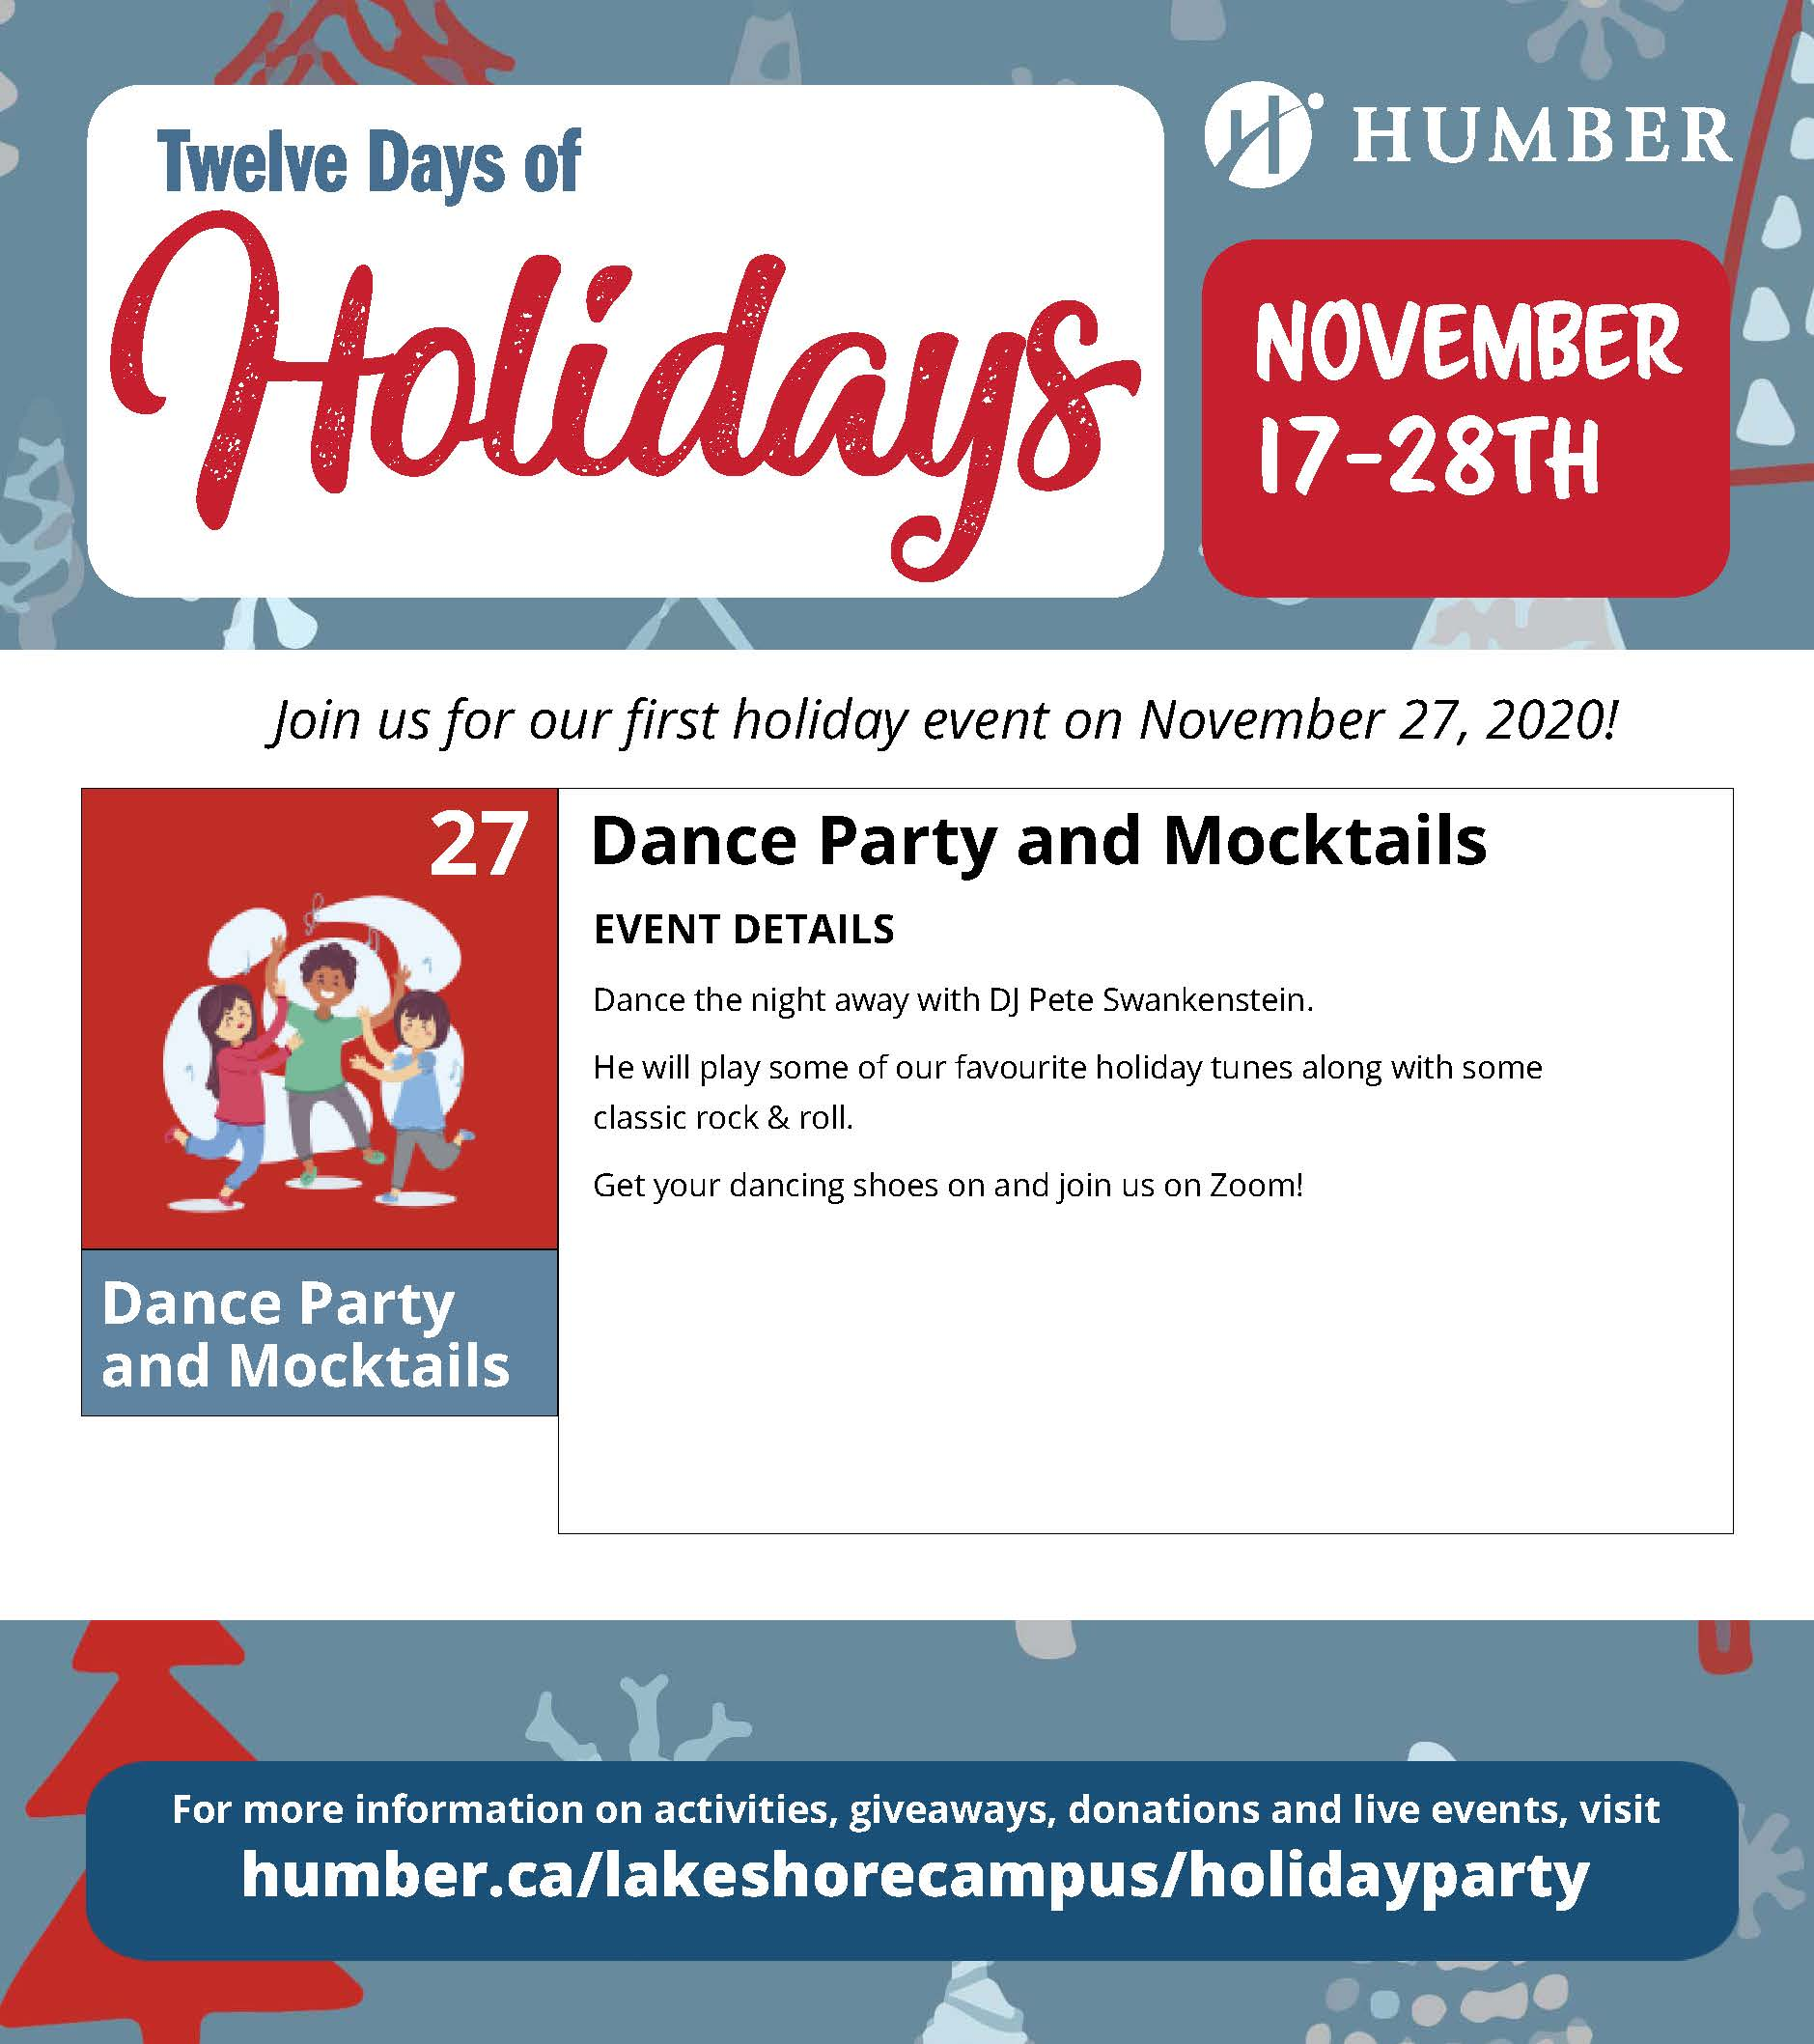 Day 11 of 12 Days of Holidays Activity Explained- Live Dance Party and Mocktails